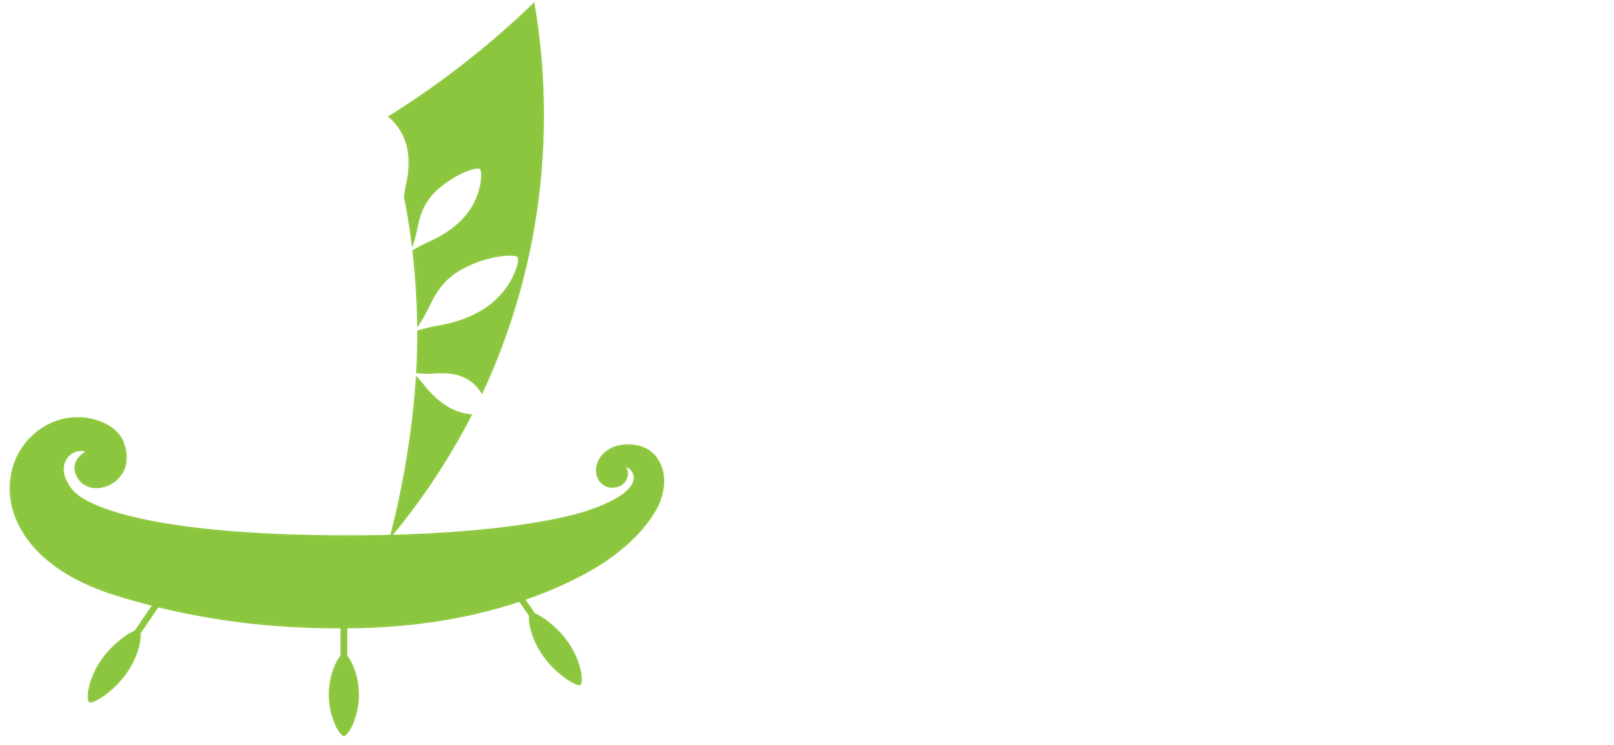 Knights Stream School